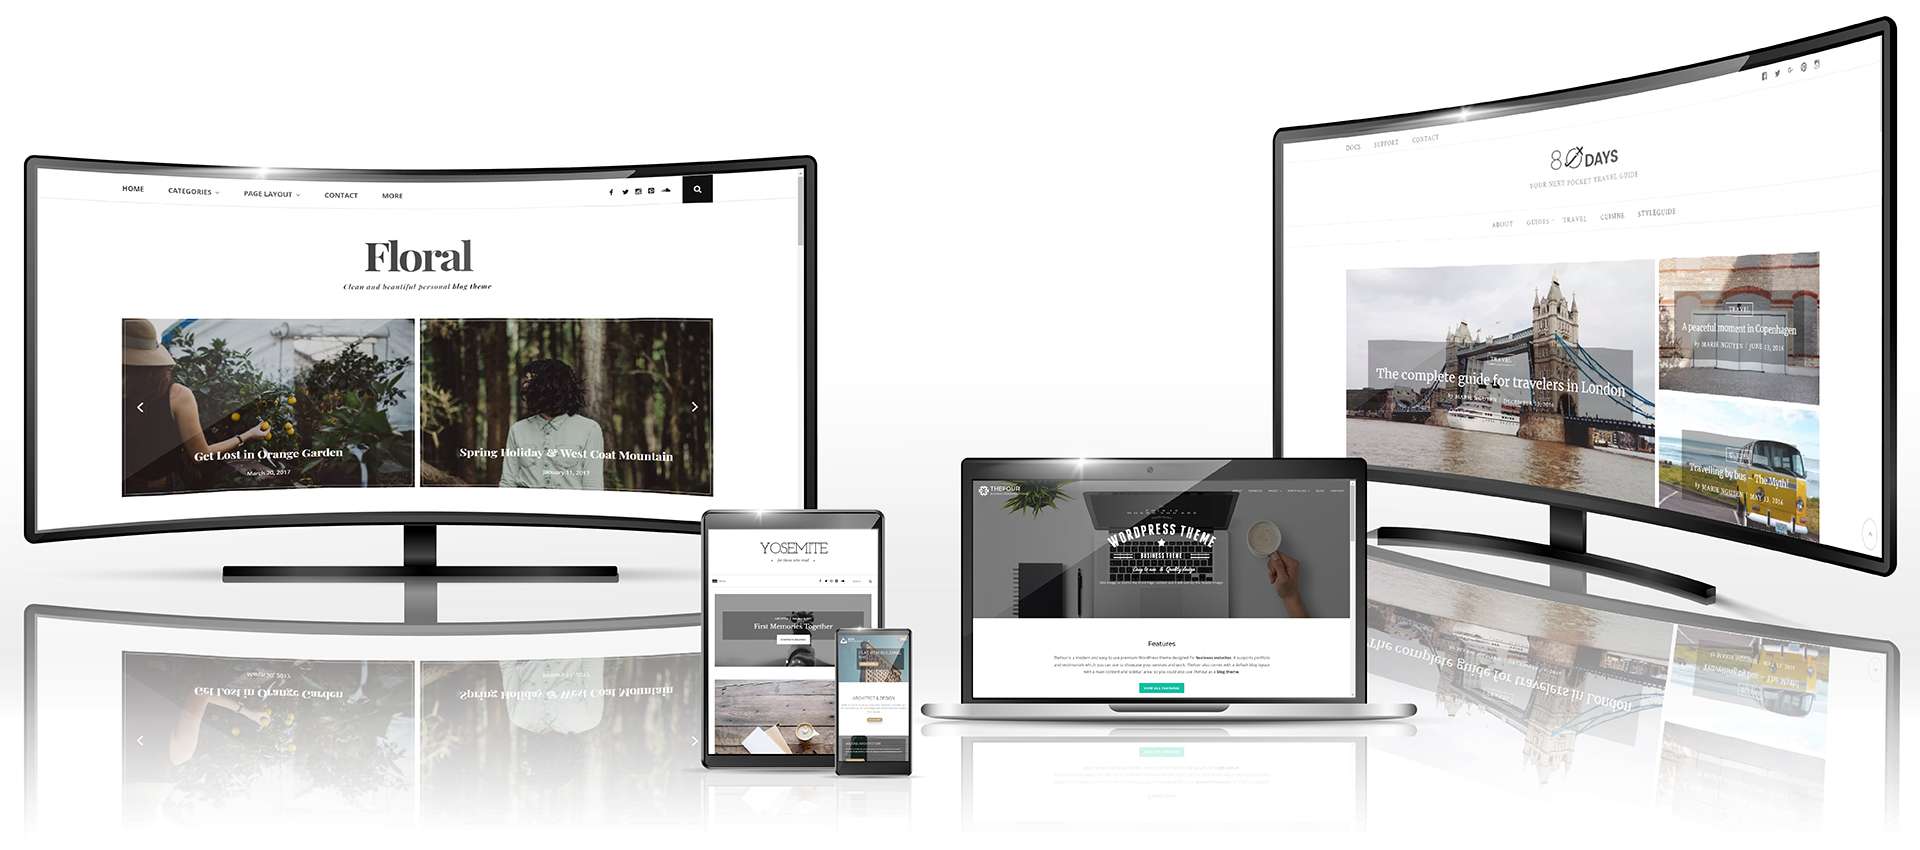 Gretathemes Free Premium Wordpress Themes And Templates